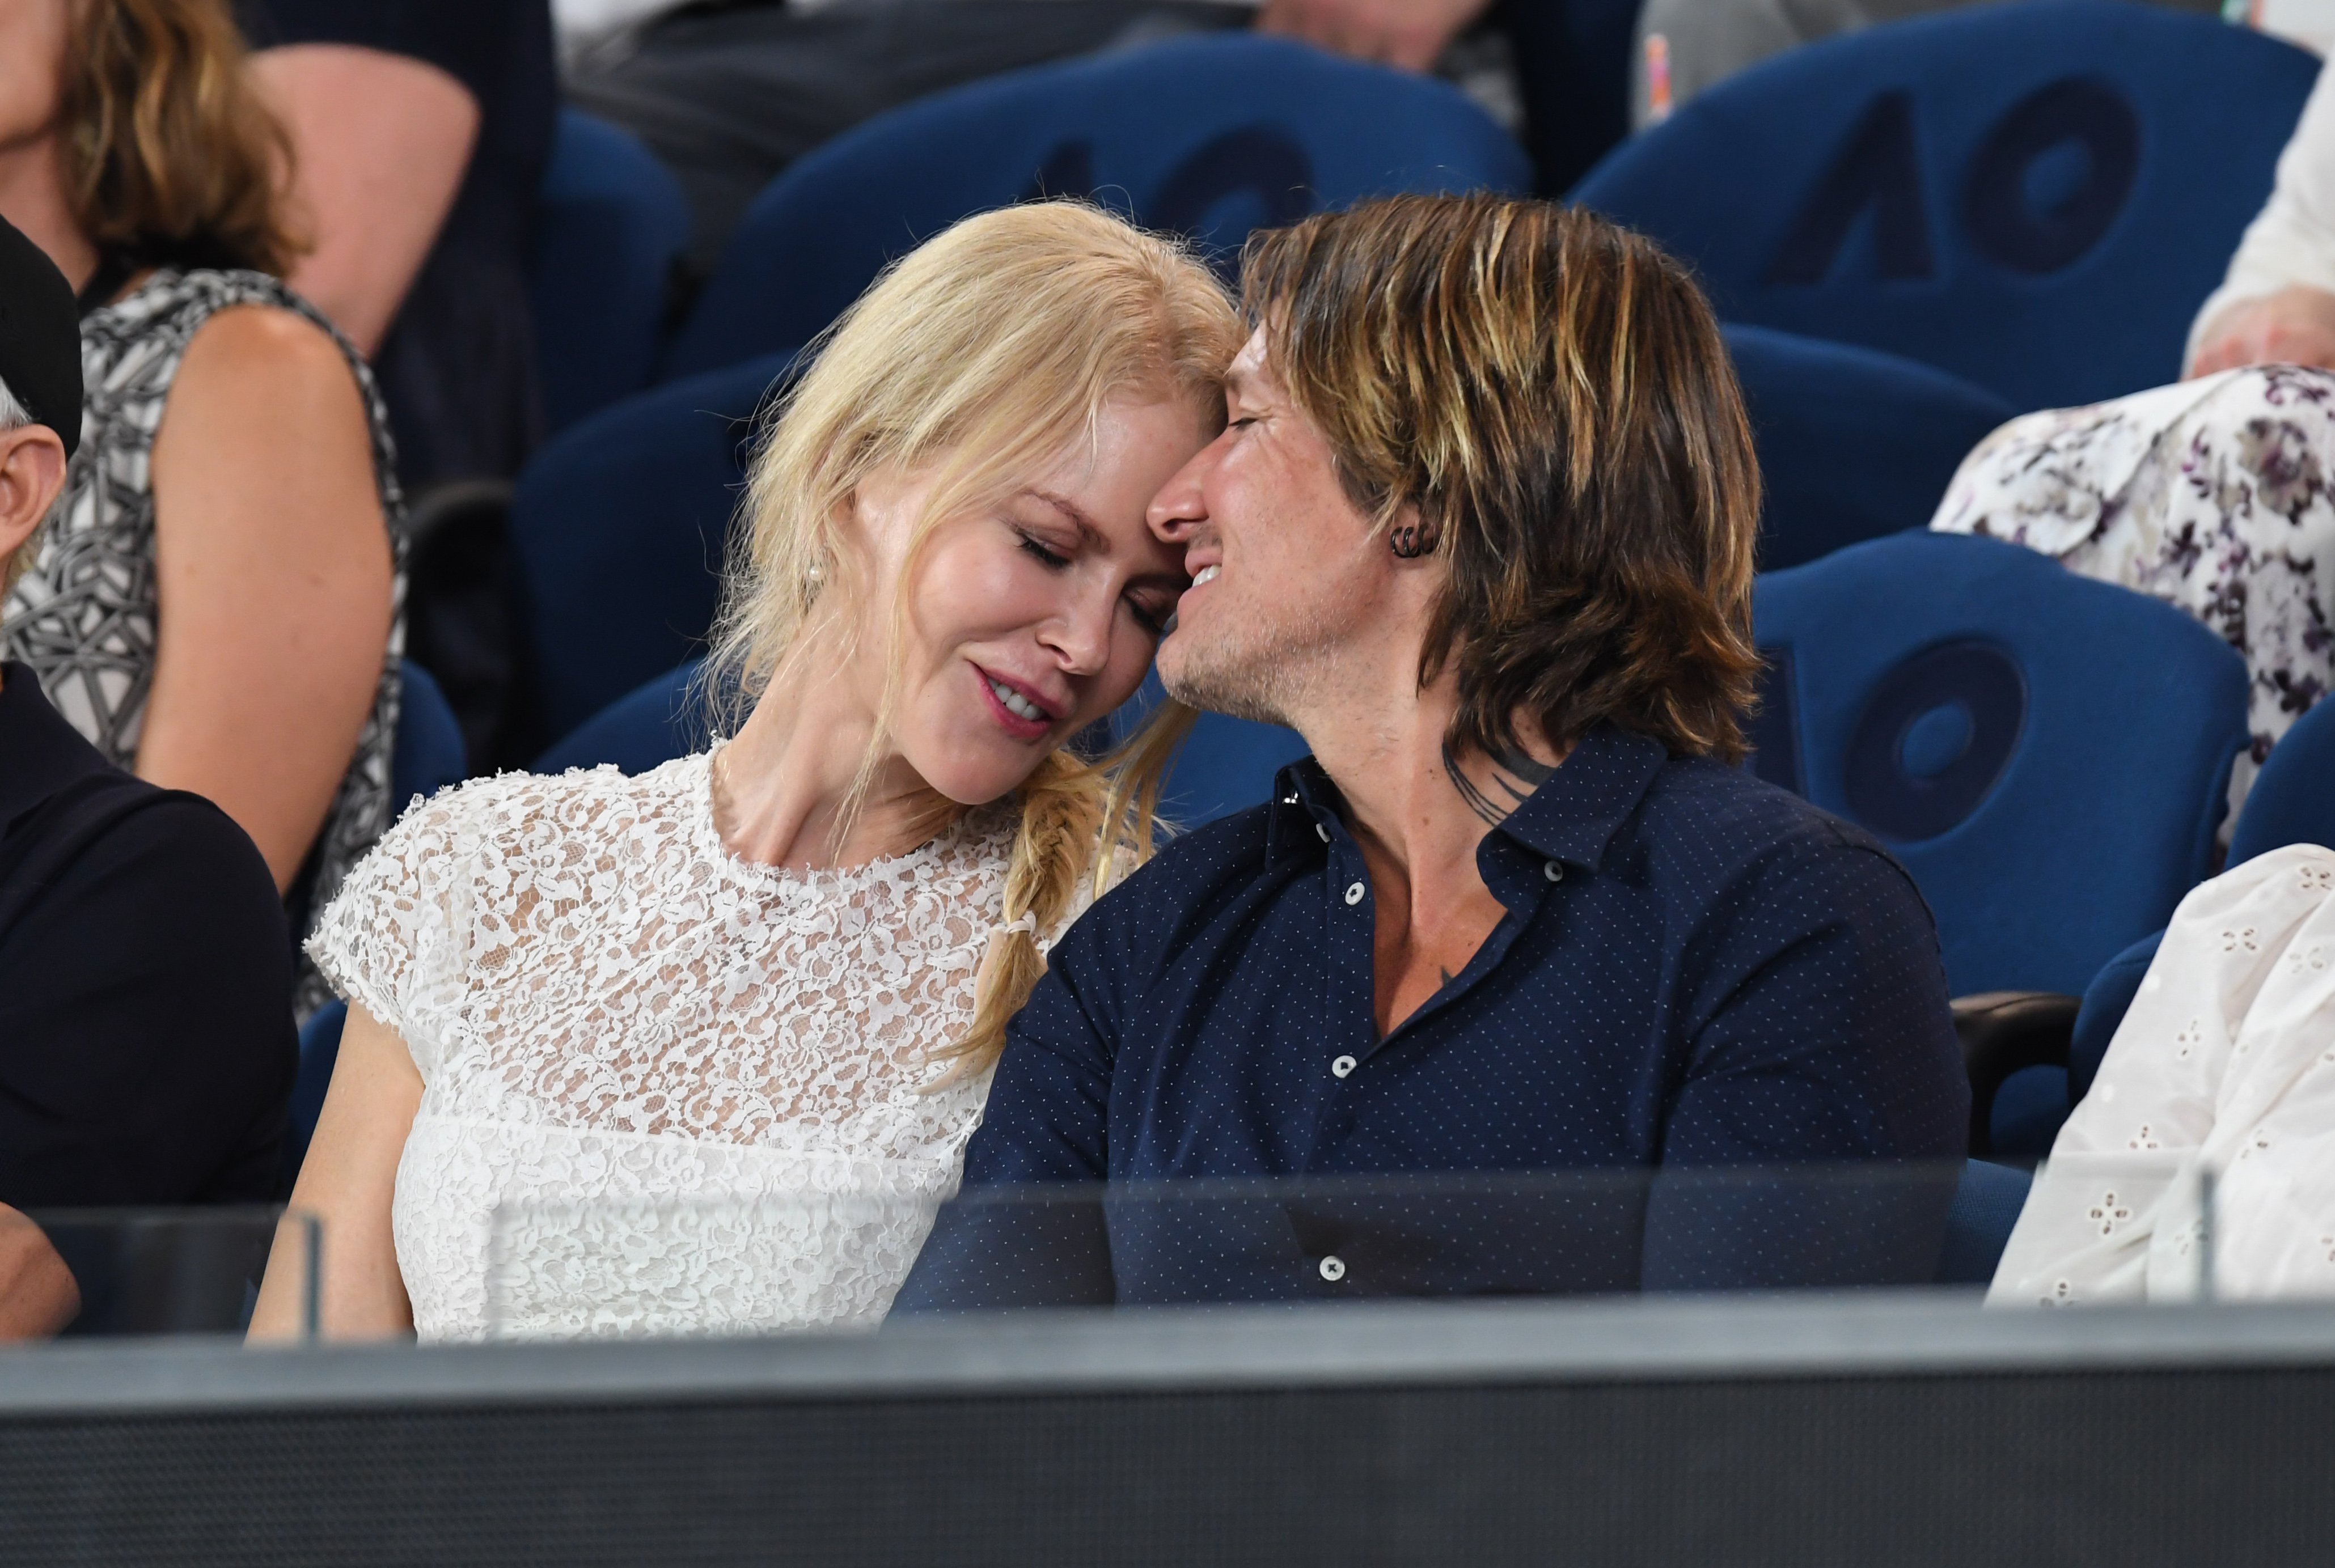 Nicole Kidman and Keith Urban share an affectionate moment during one of the women's semi finals at the 2019 Australian Open | Source: Getty images